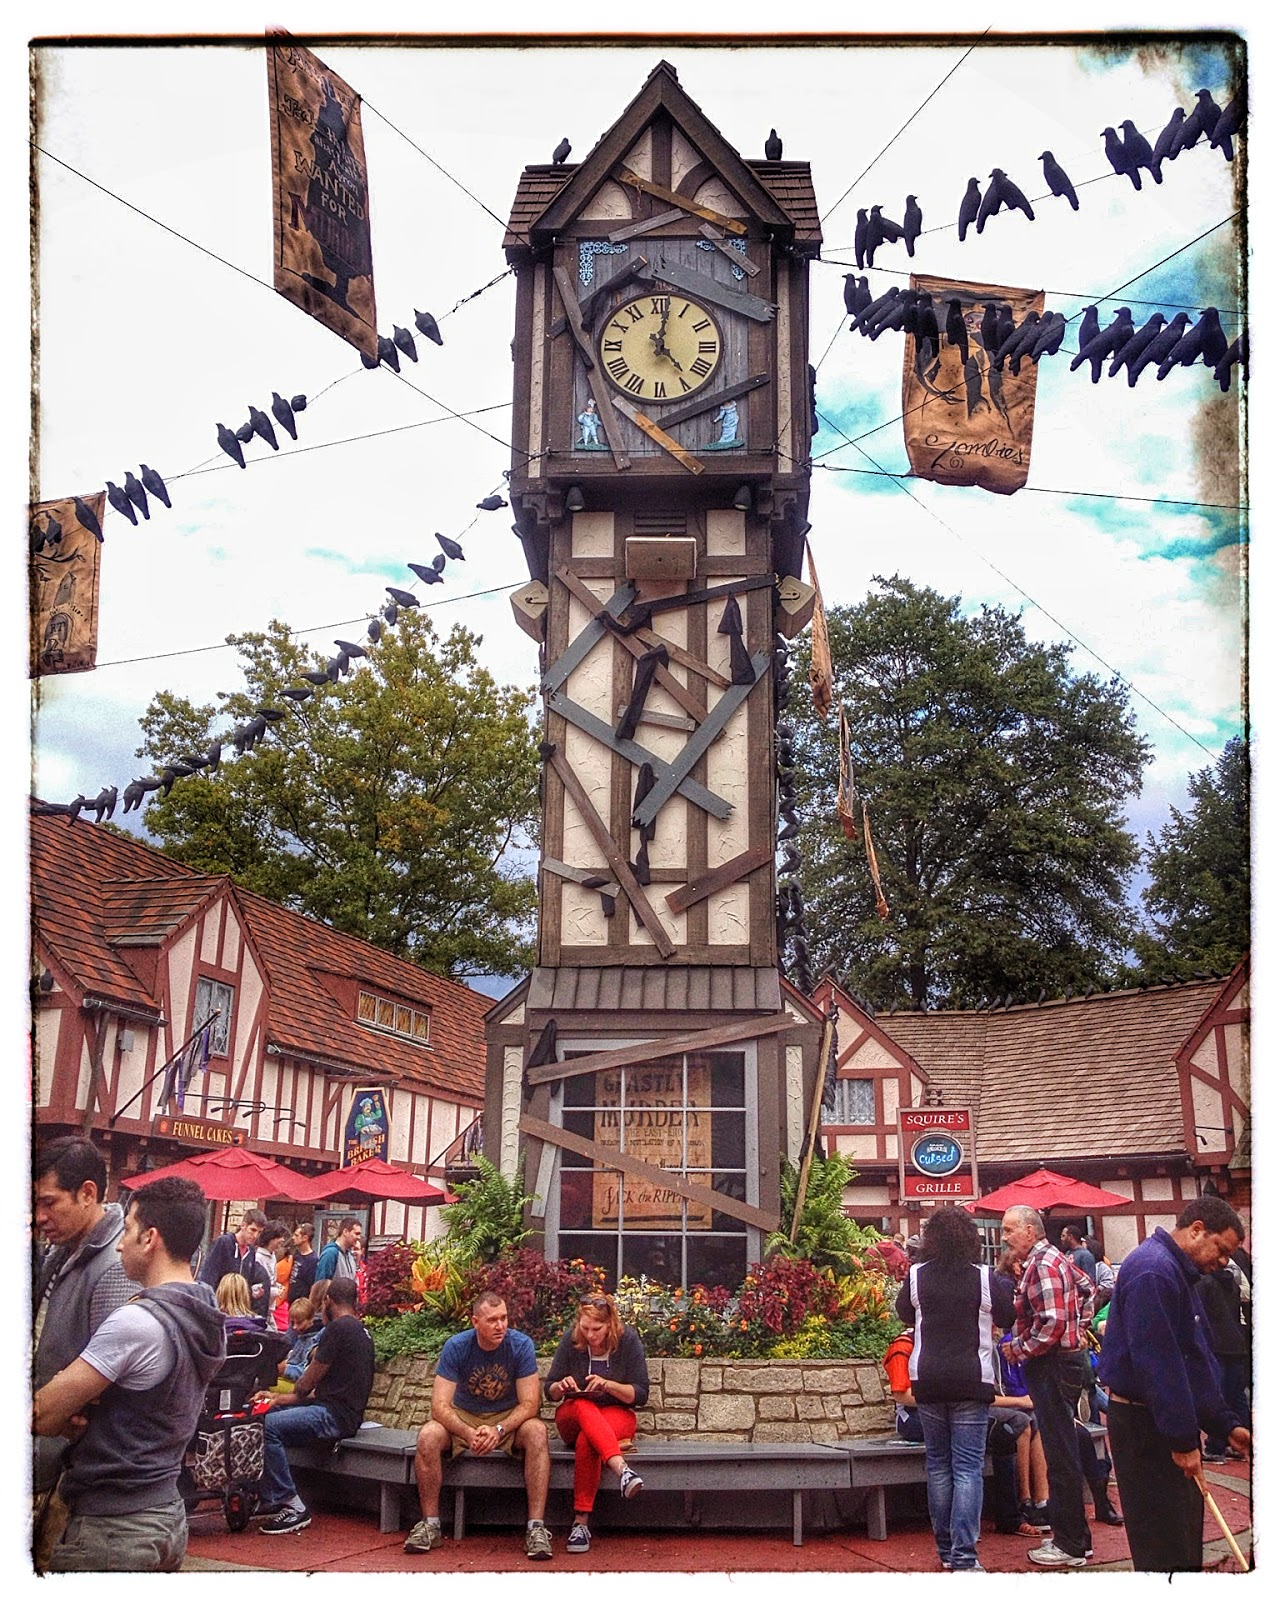 Big Ben at Busch Gardens, Williamsburg via foobella.blogspot.com